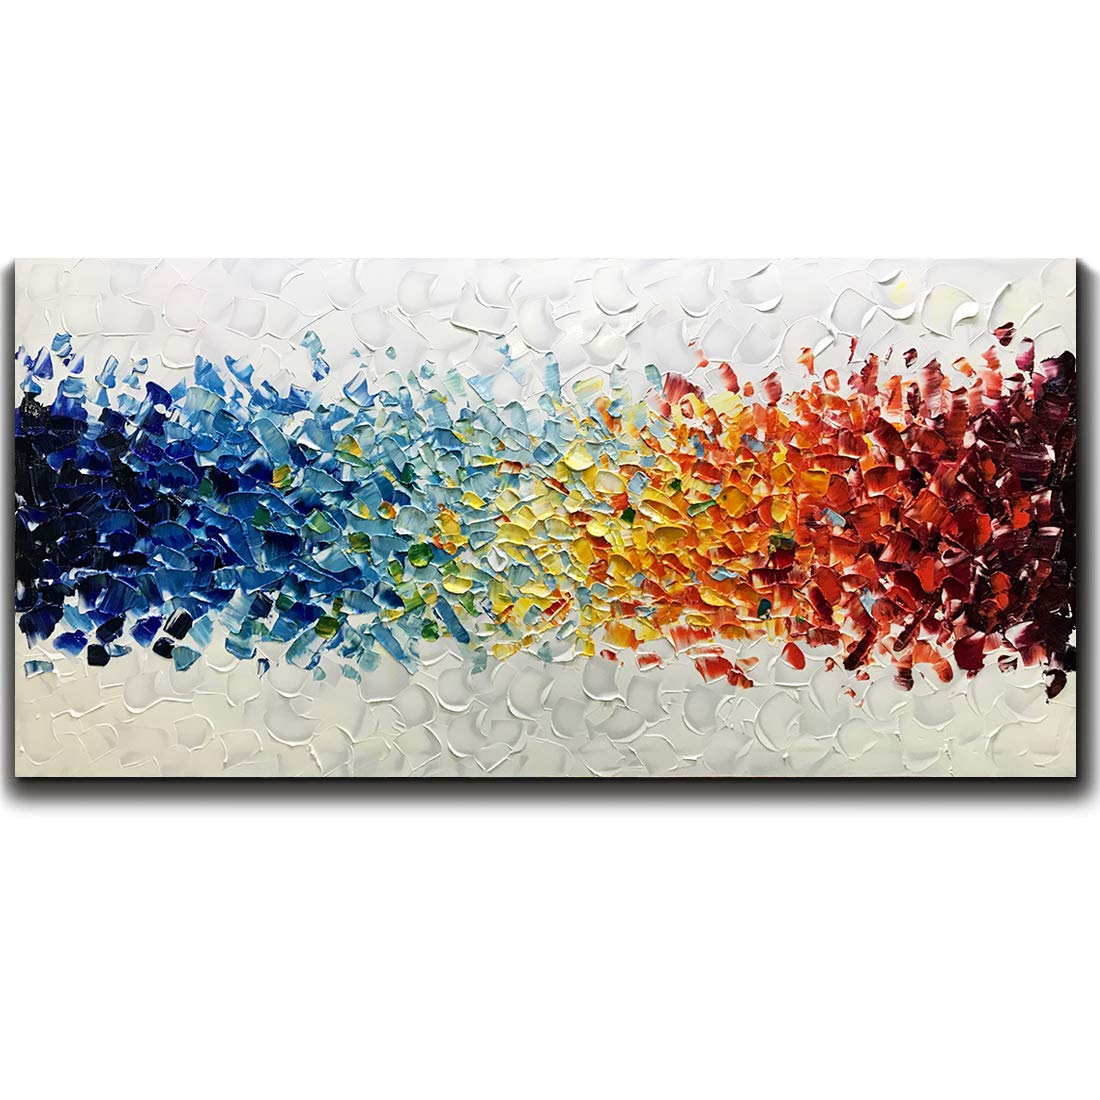 Amei Art Paintings,24X48 Inch 3D Hand-Painted On Canvas Colorful White Background Abstract Oil Painting Contemporary Artwork Simple Modern Home Decor Wall Art Wood Inside Framed Ready to Hang